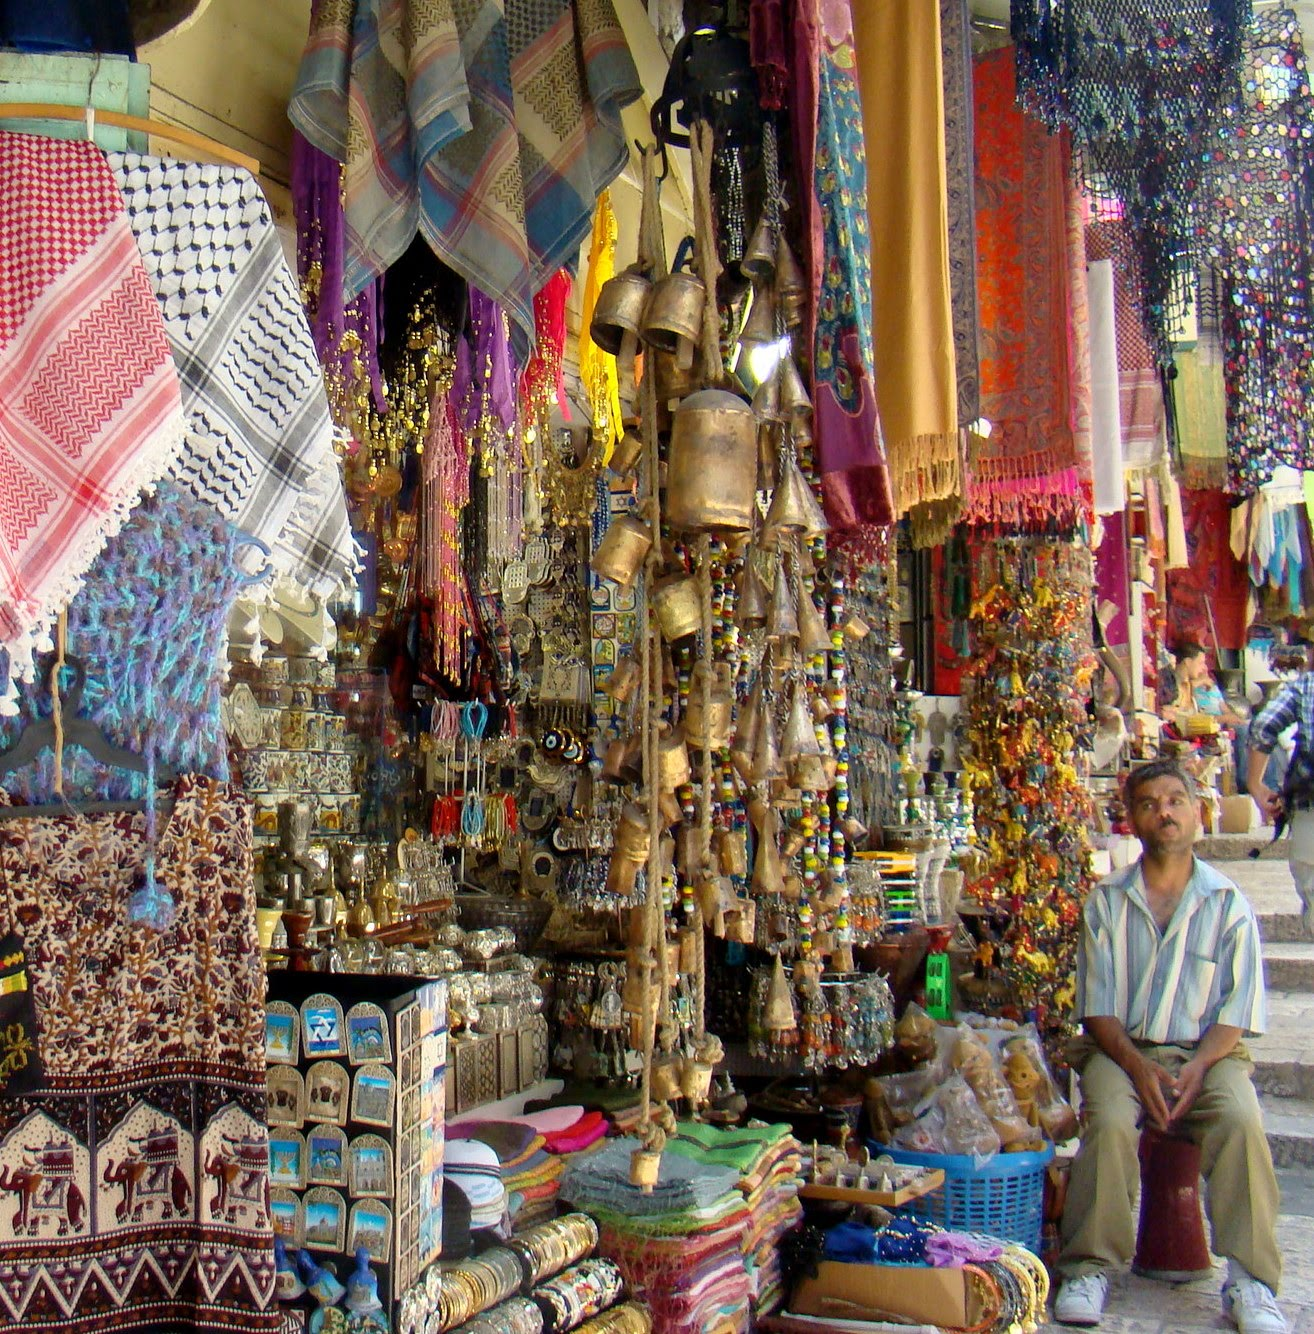 PazzaPazza: THE OLD CITY OF JERUSALEM - THE ARAB BAZAAR